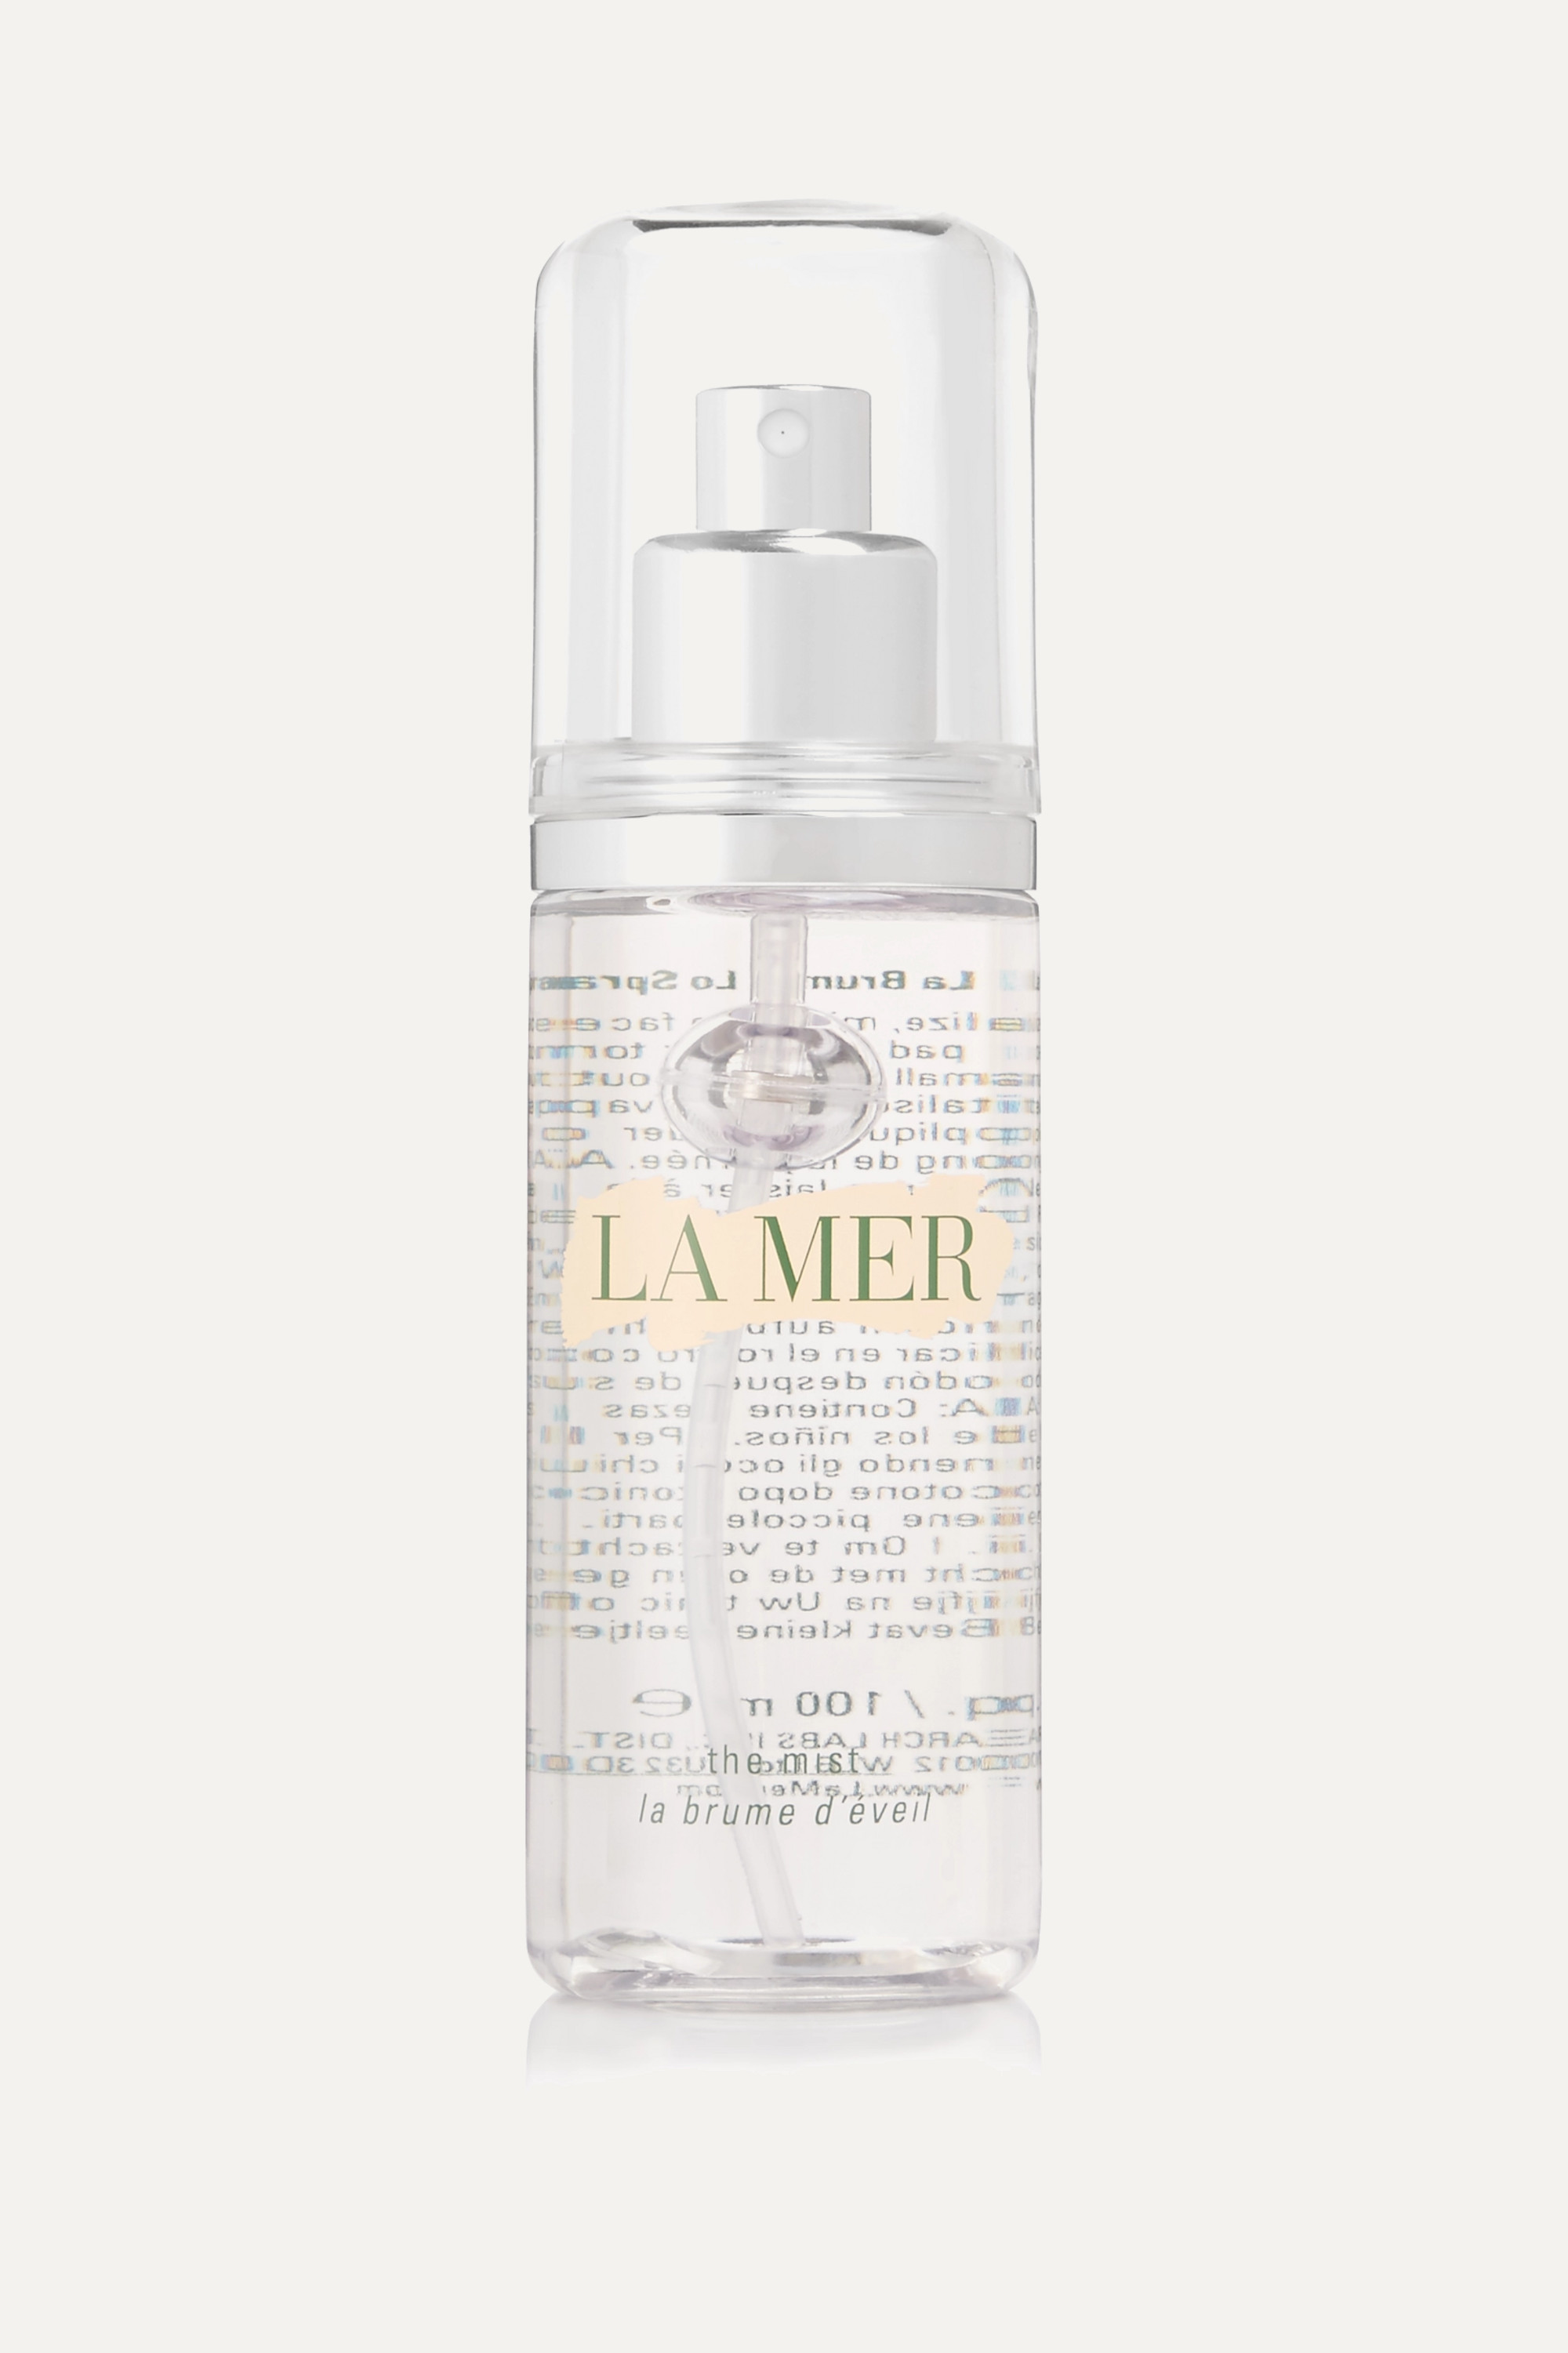 La Mer The Mist, 100ml